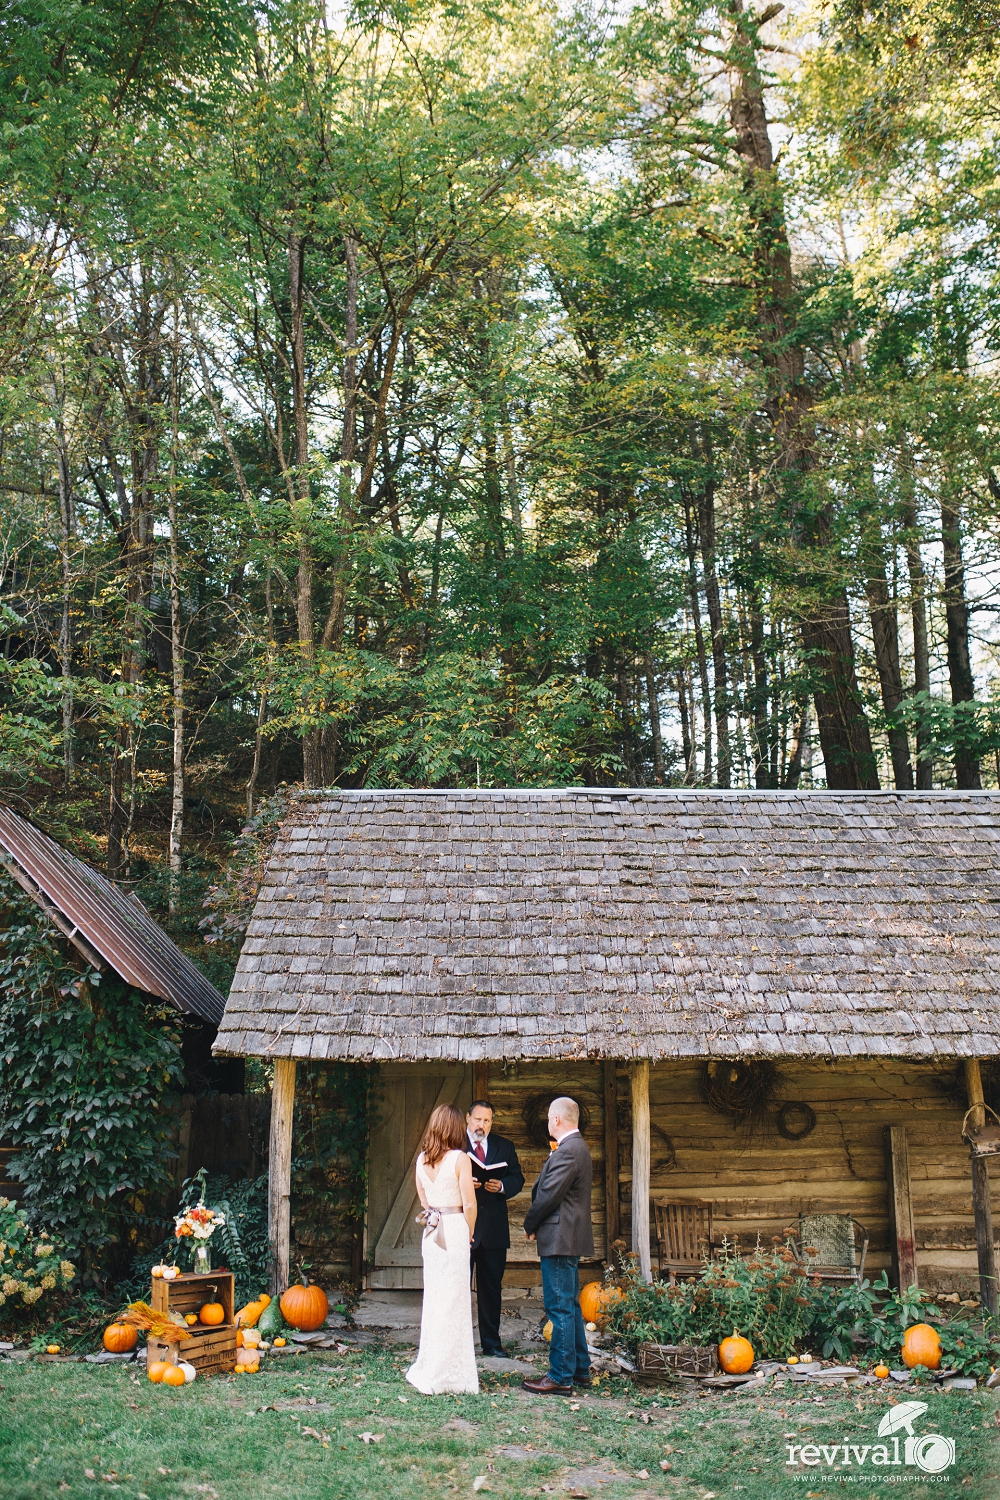 Alisa and Ben's Fall Destination Elopement at The Mast Farm Inn by Revival Photography www.revivalphotography.com